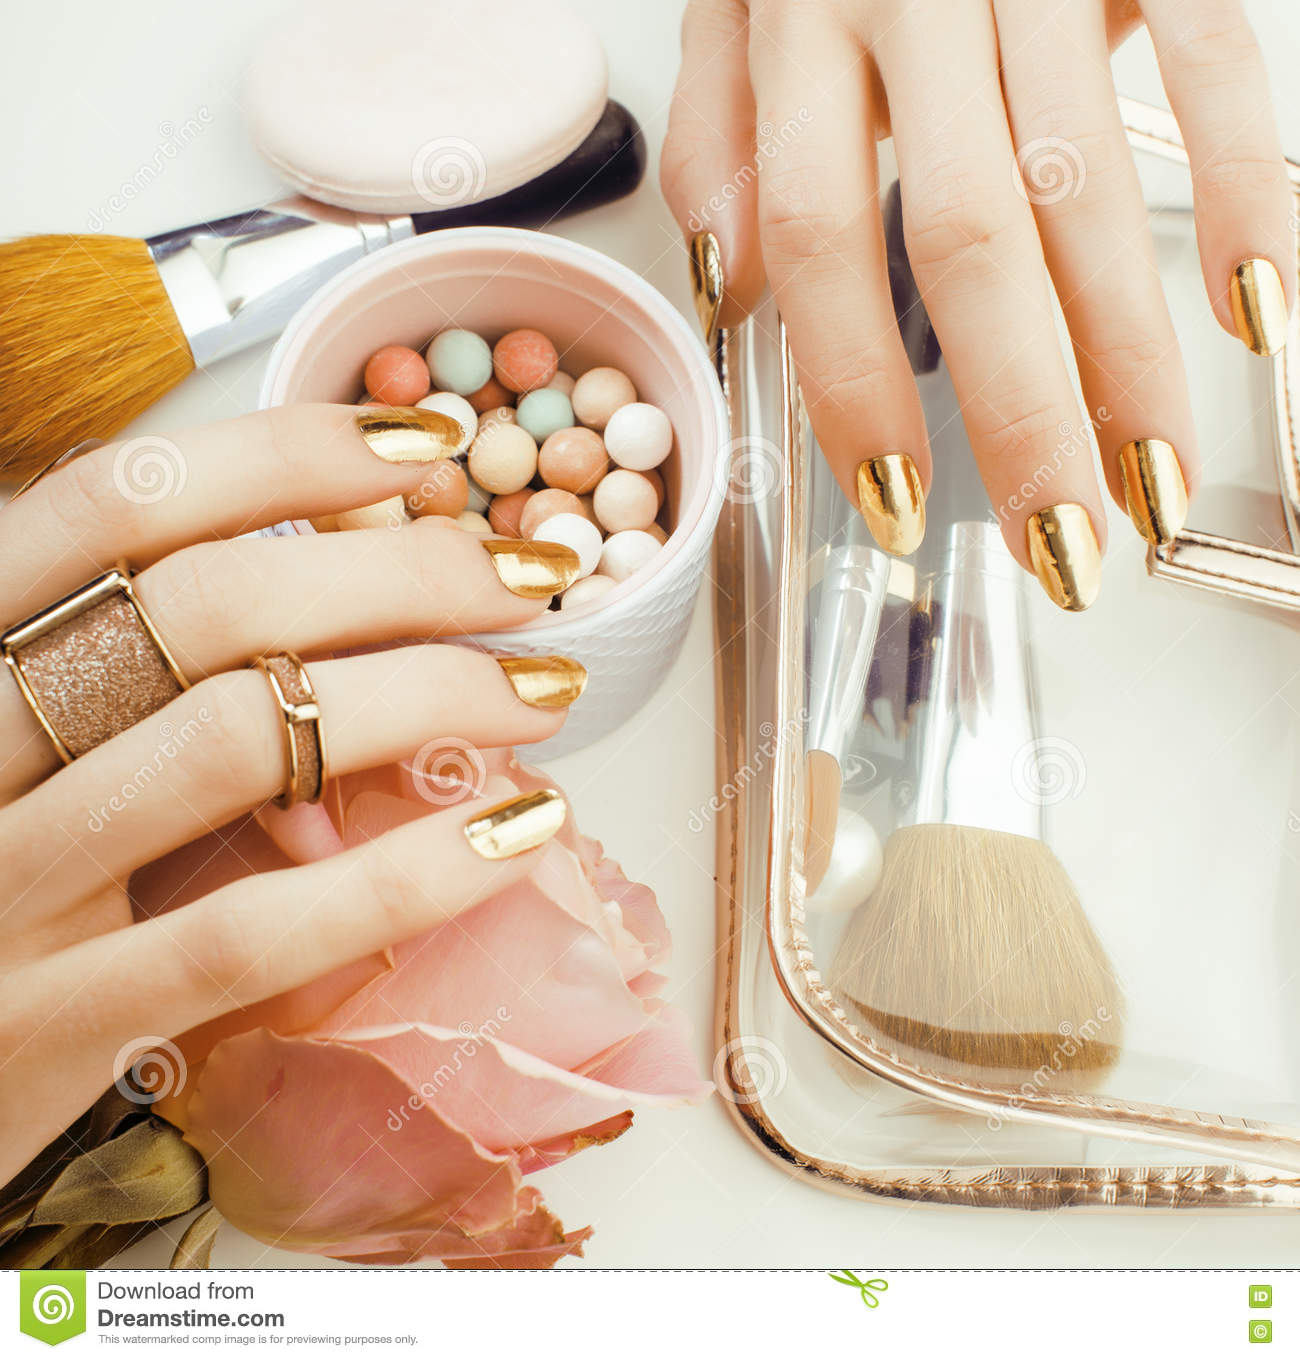 woman hands with golden manicure and many rings holding brushes